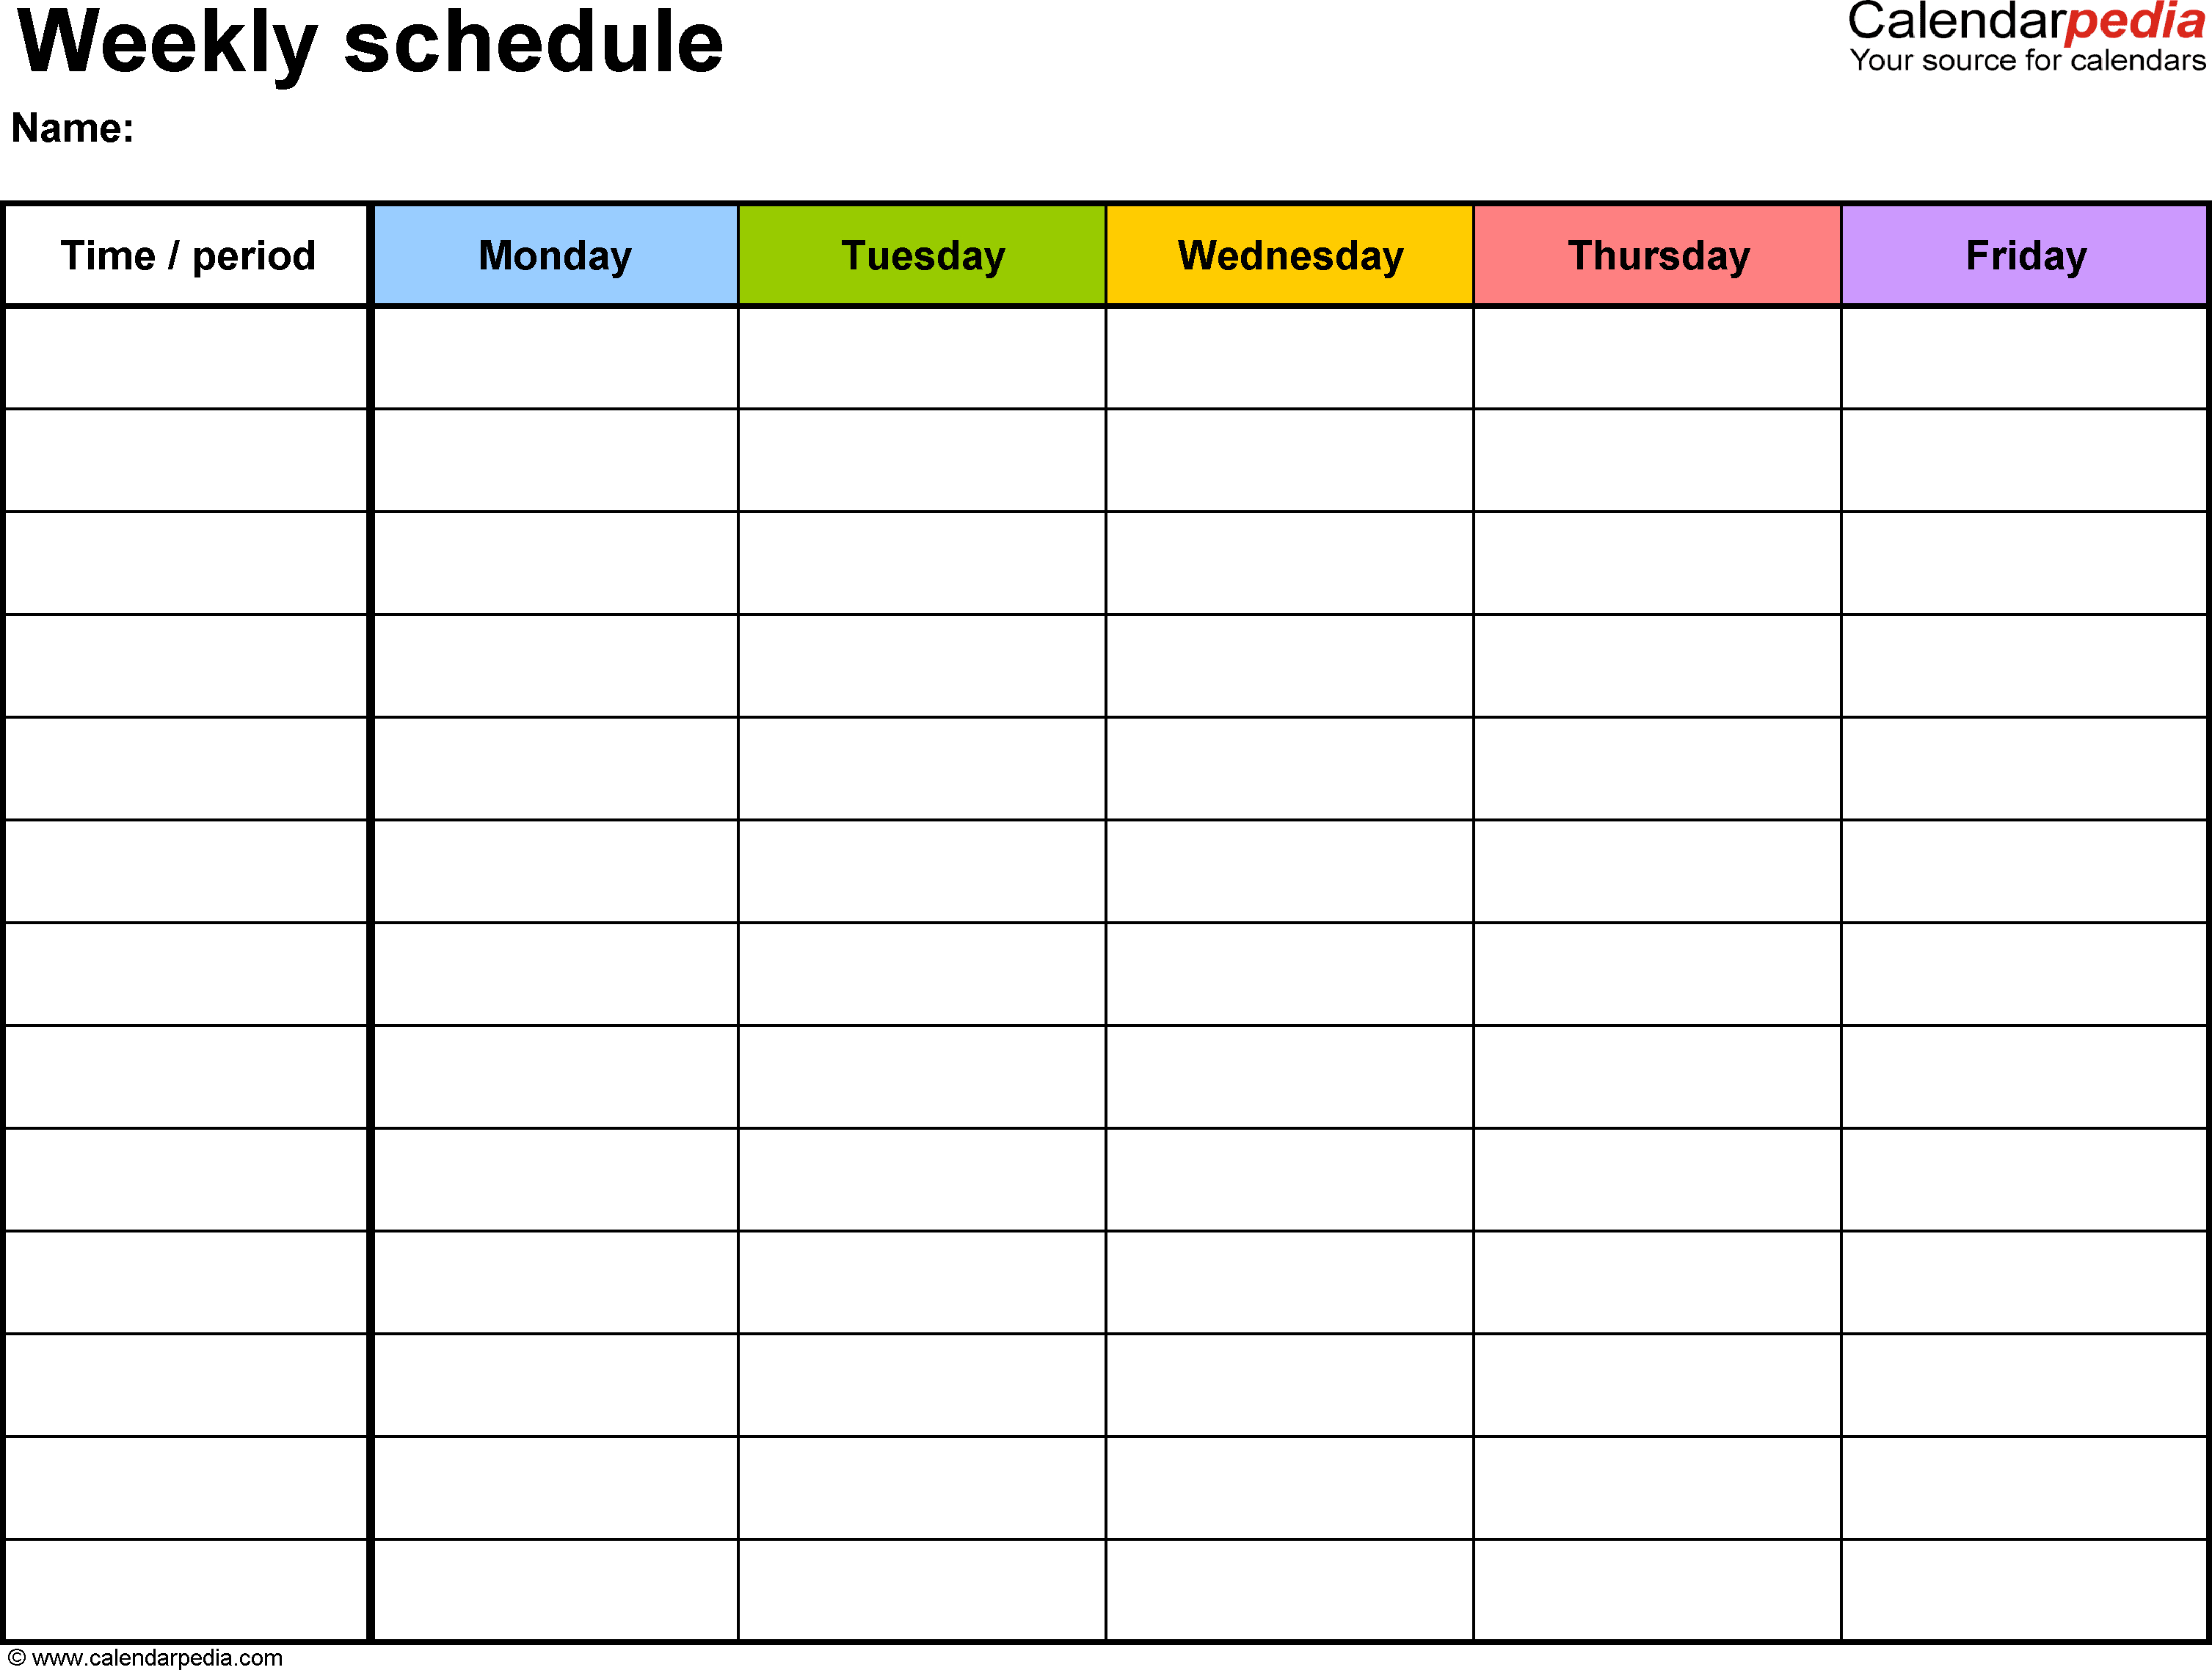 Weekly Schedule Template For Word Version 1: Landscape, 1 Blank 7 Day Calendar Template